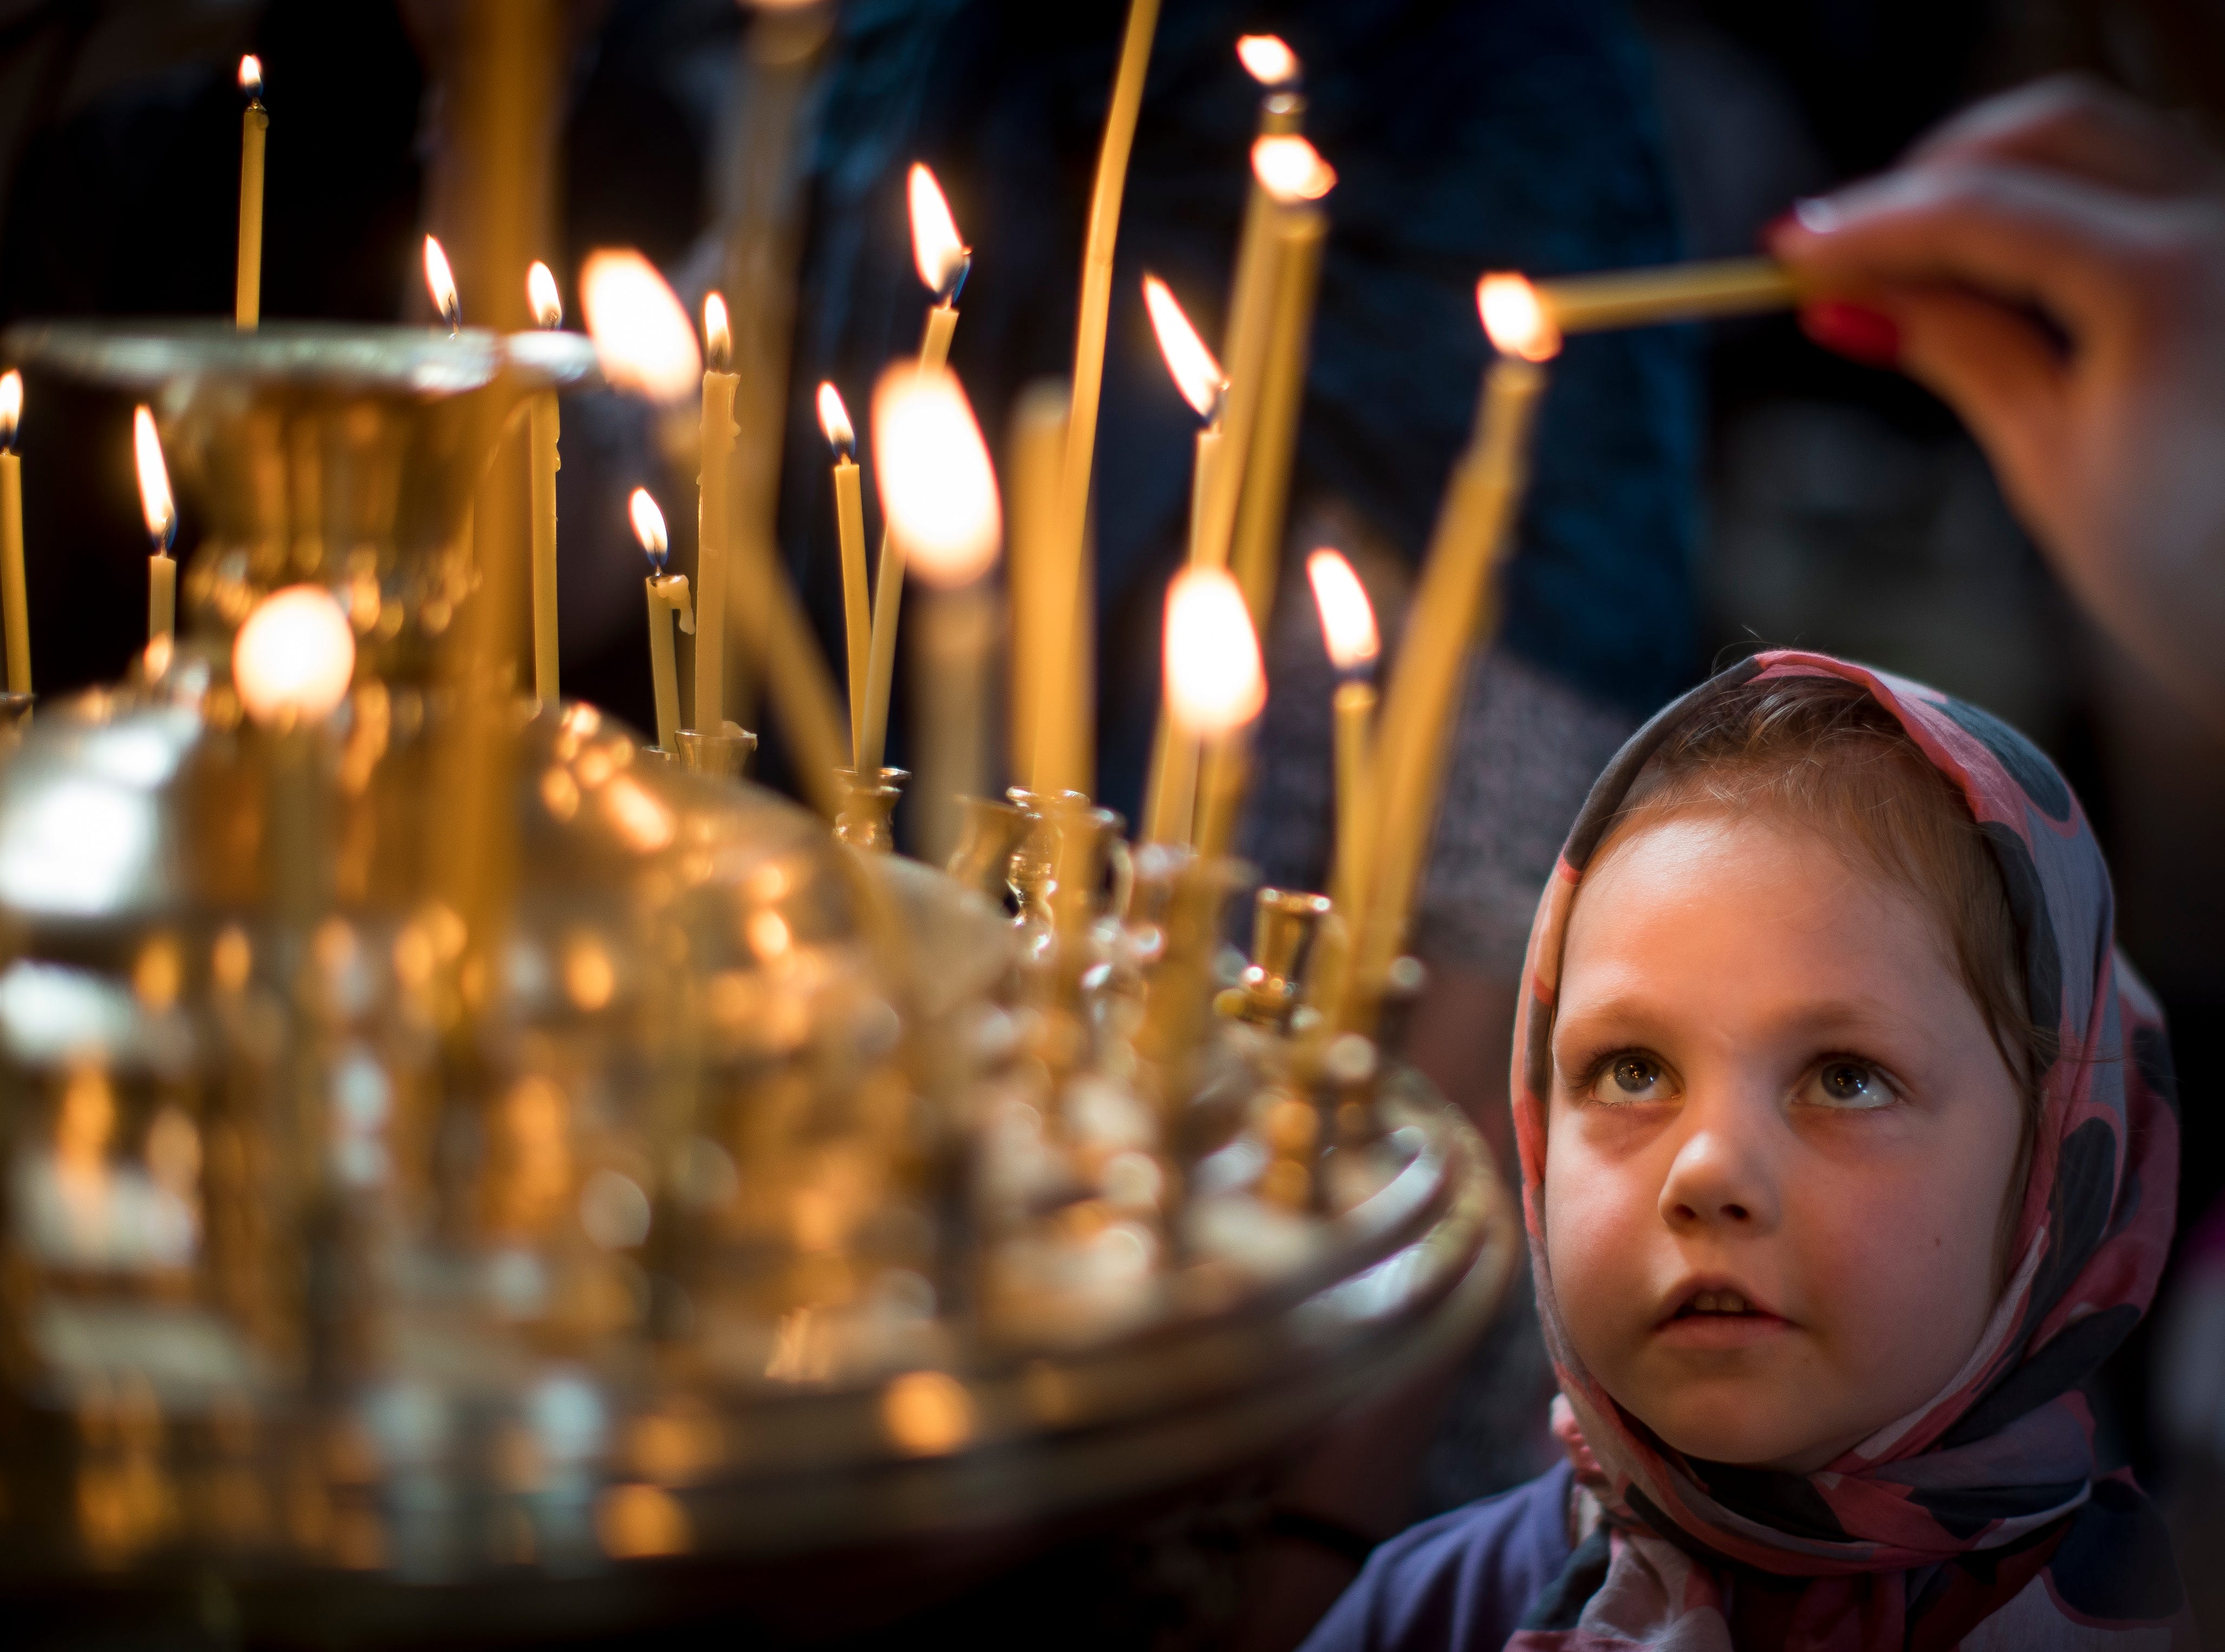 Worshippers light candles during the Easter service at the Orthodox Church of the Holy Spirit in Vilnius, Lithuania, Saturday, April 27, 2018. Orthodox Christians around the world celebrate Easter on Sunday, April 28.